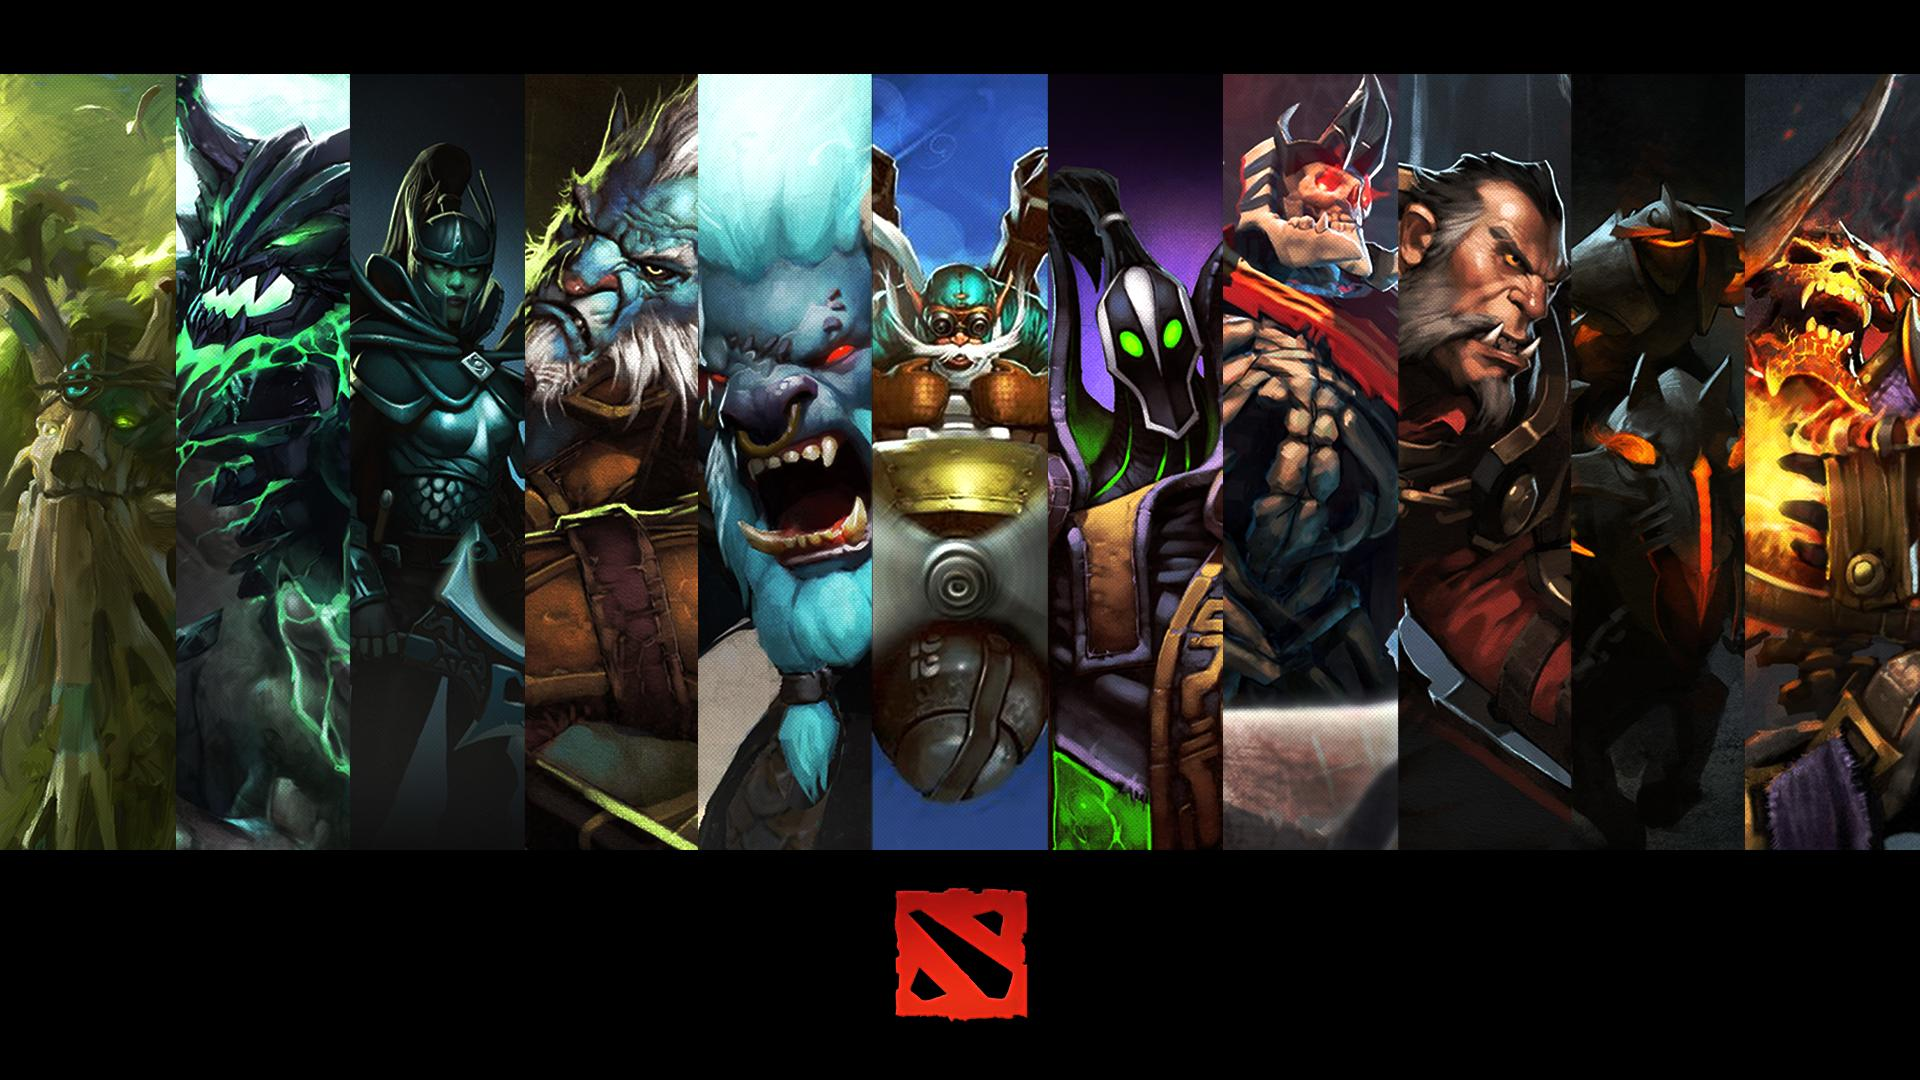 Dota  Wallpapers HD, Desktop Backgrounds, Images and Pictures 1920x1080